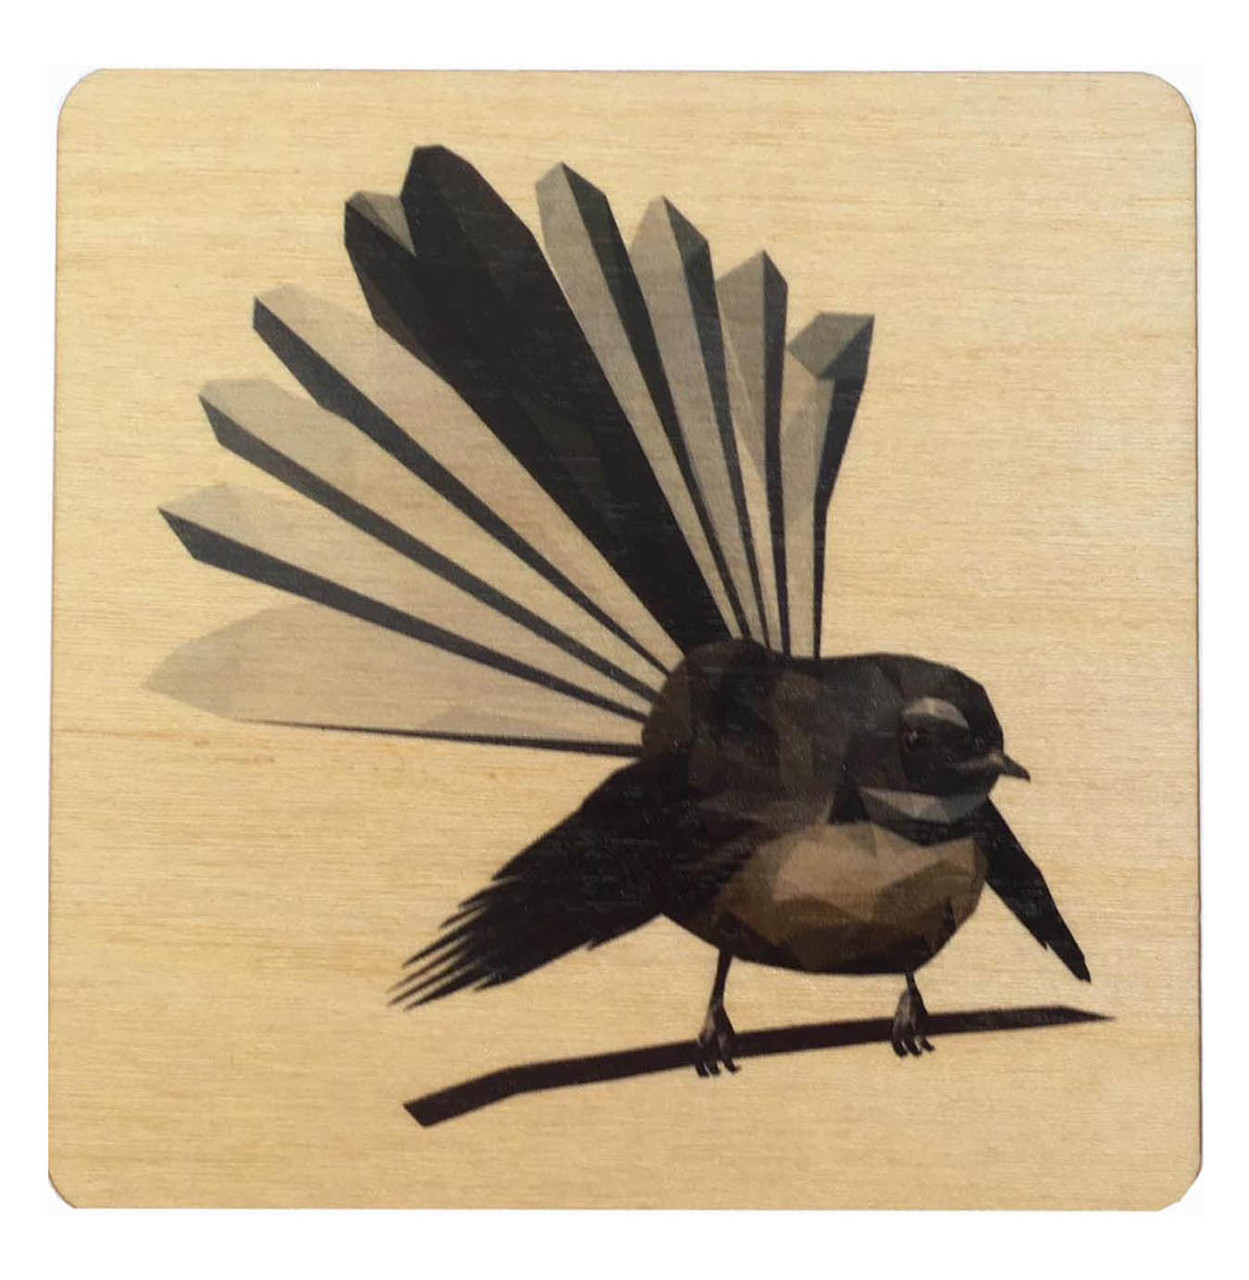 This wooden rimu light weight coaster shows a fantail, one of New Zealand's native birds.